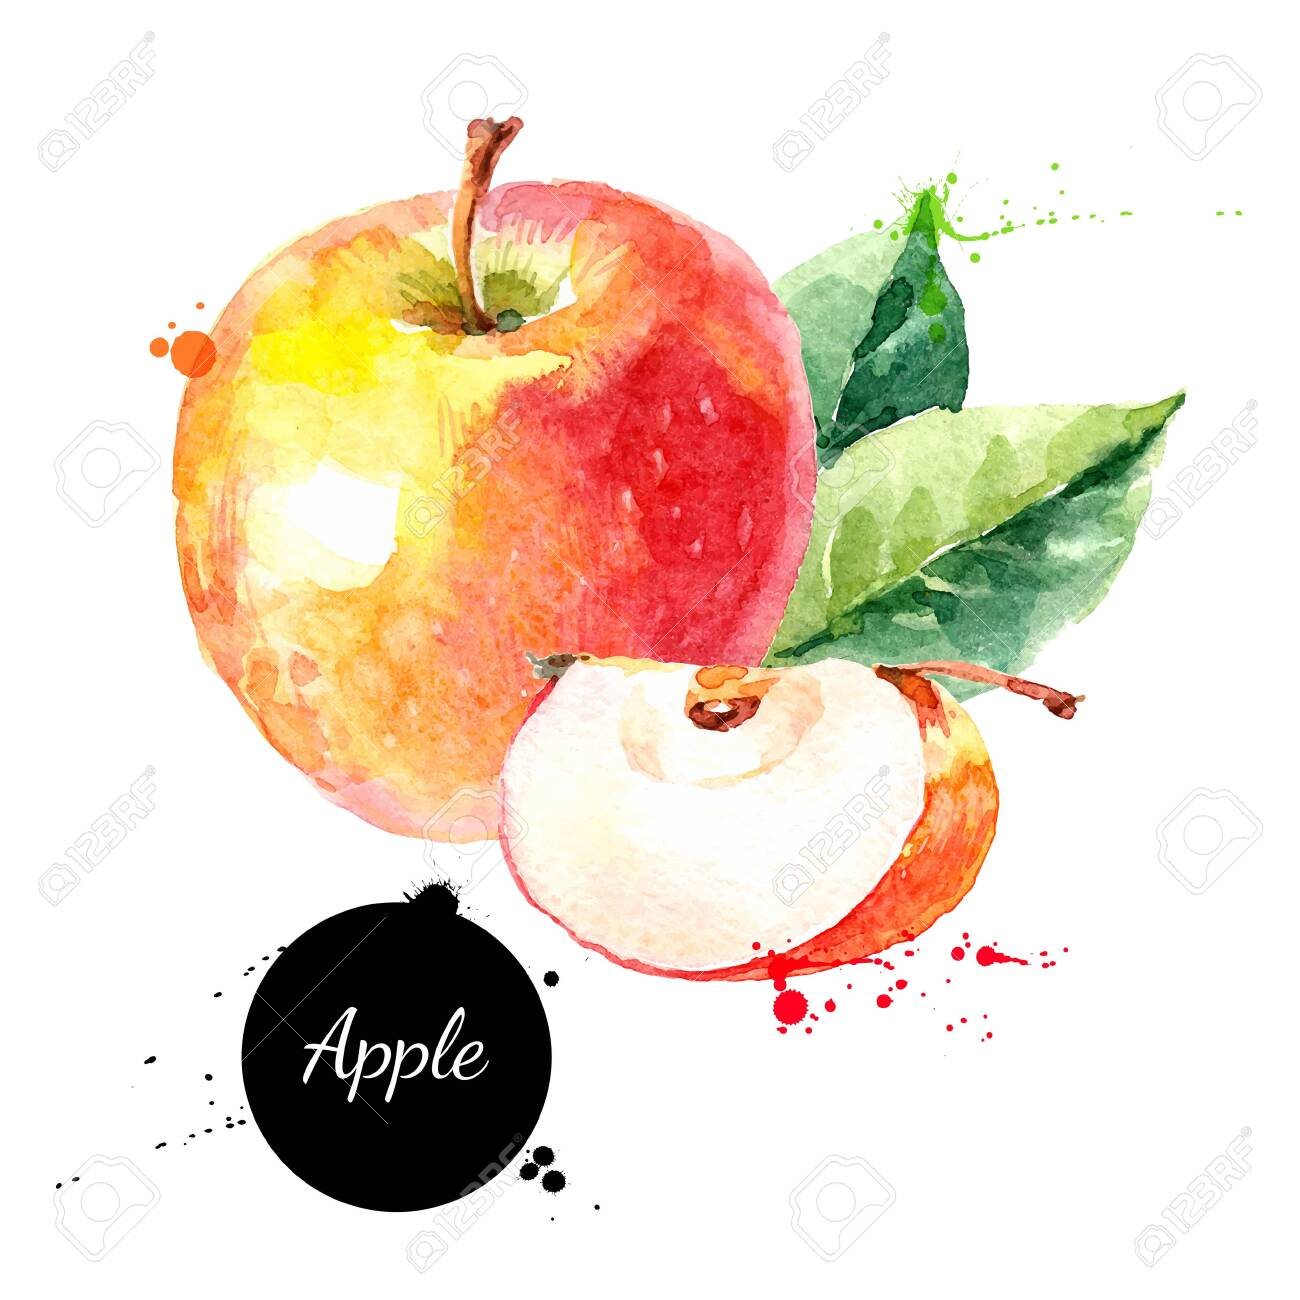 Watercolor hand drawn yellow and red apple. Isolated eco natural food fruit illustration on white background - 150456932